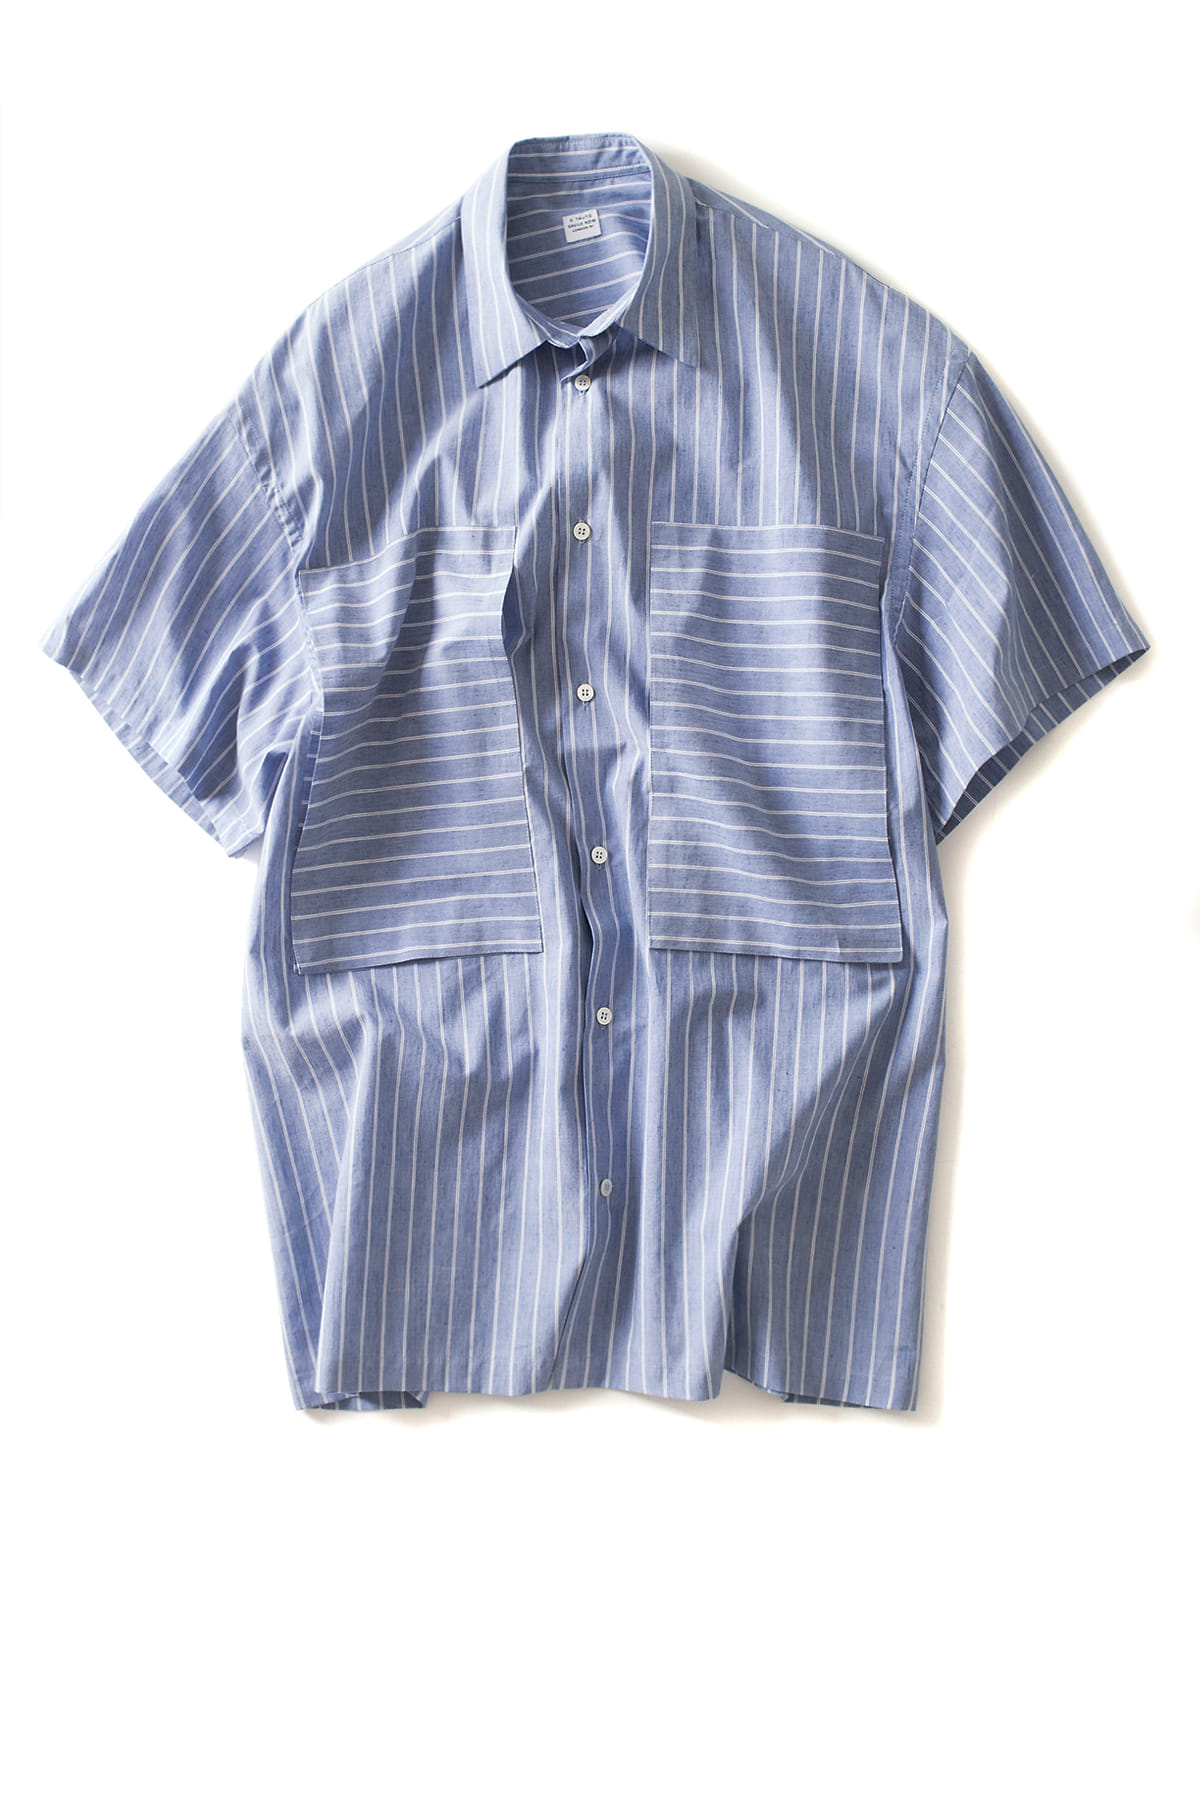 E. Tautz : Short Sleeve Lineman Shirt (White / Blue)